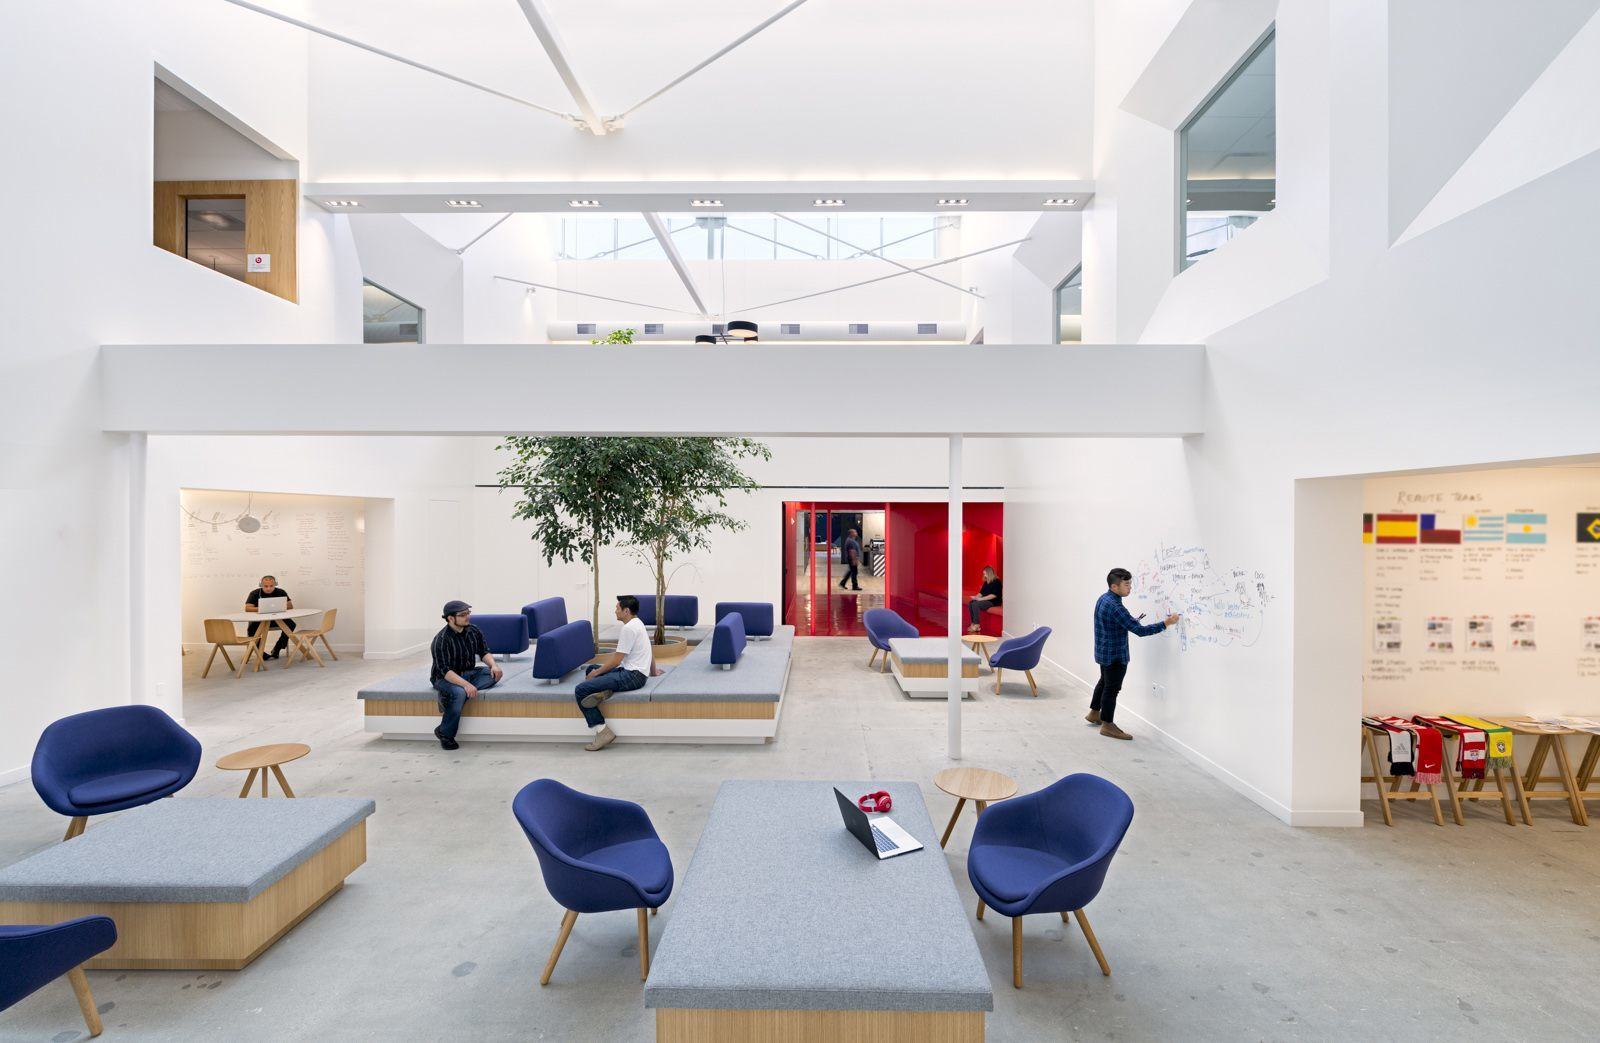 Another Look Inside Beats by Dr. Dre's Los Angeles Headquarters